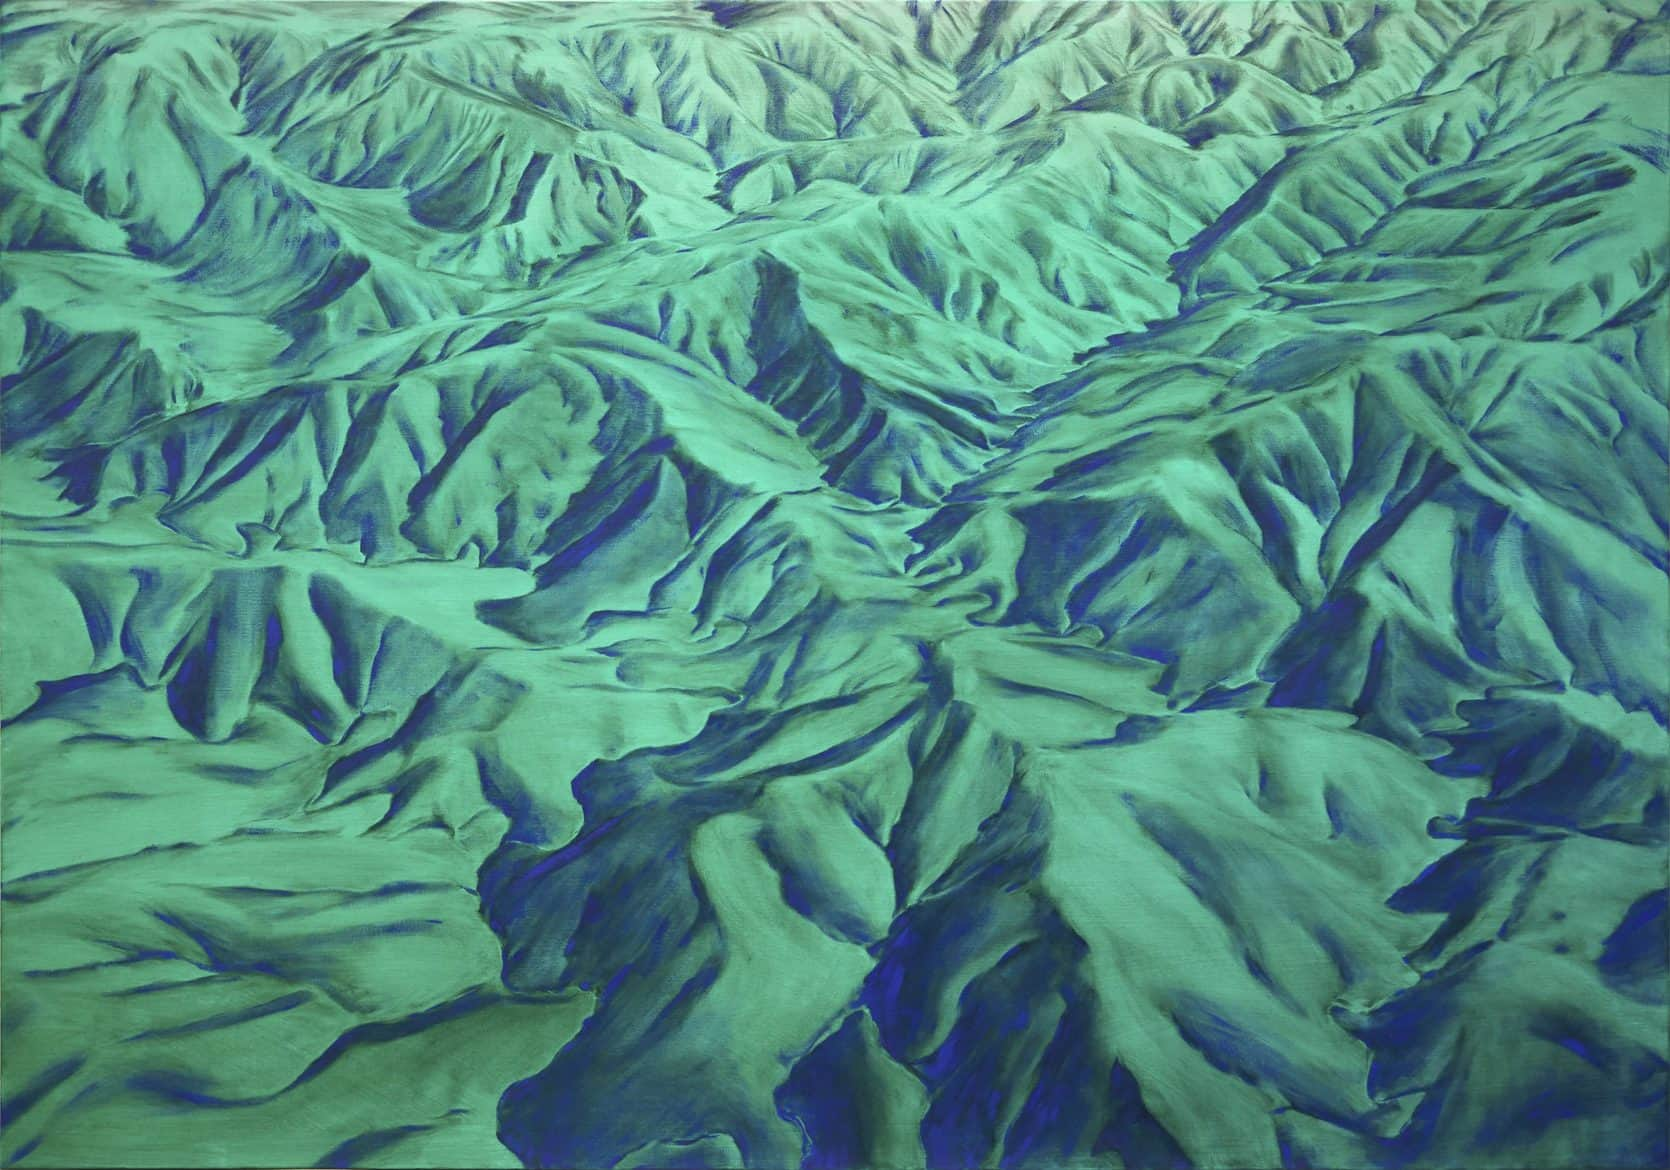 Piers Greville, 'Phase Space Green', 2020, oil on linen, 200 x 140 cm